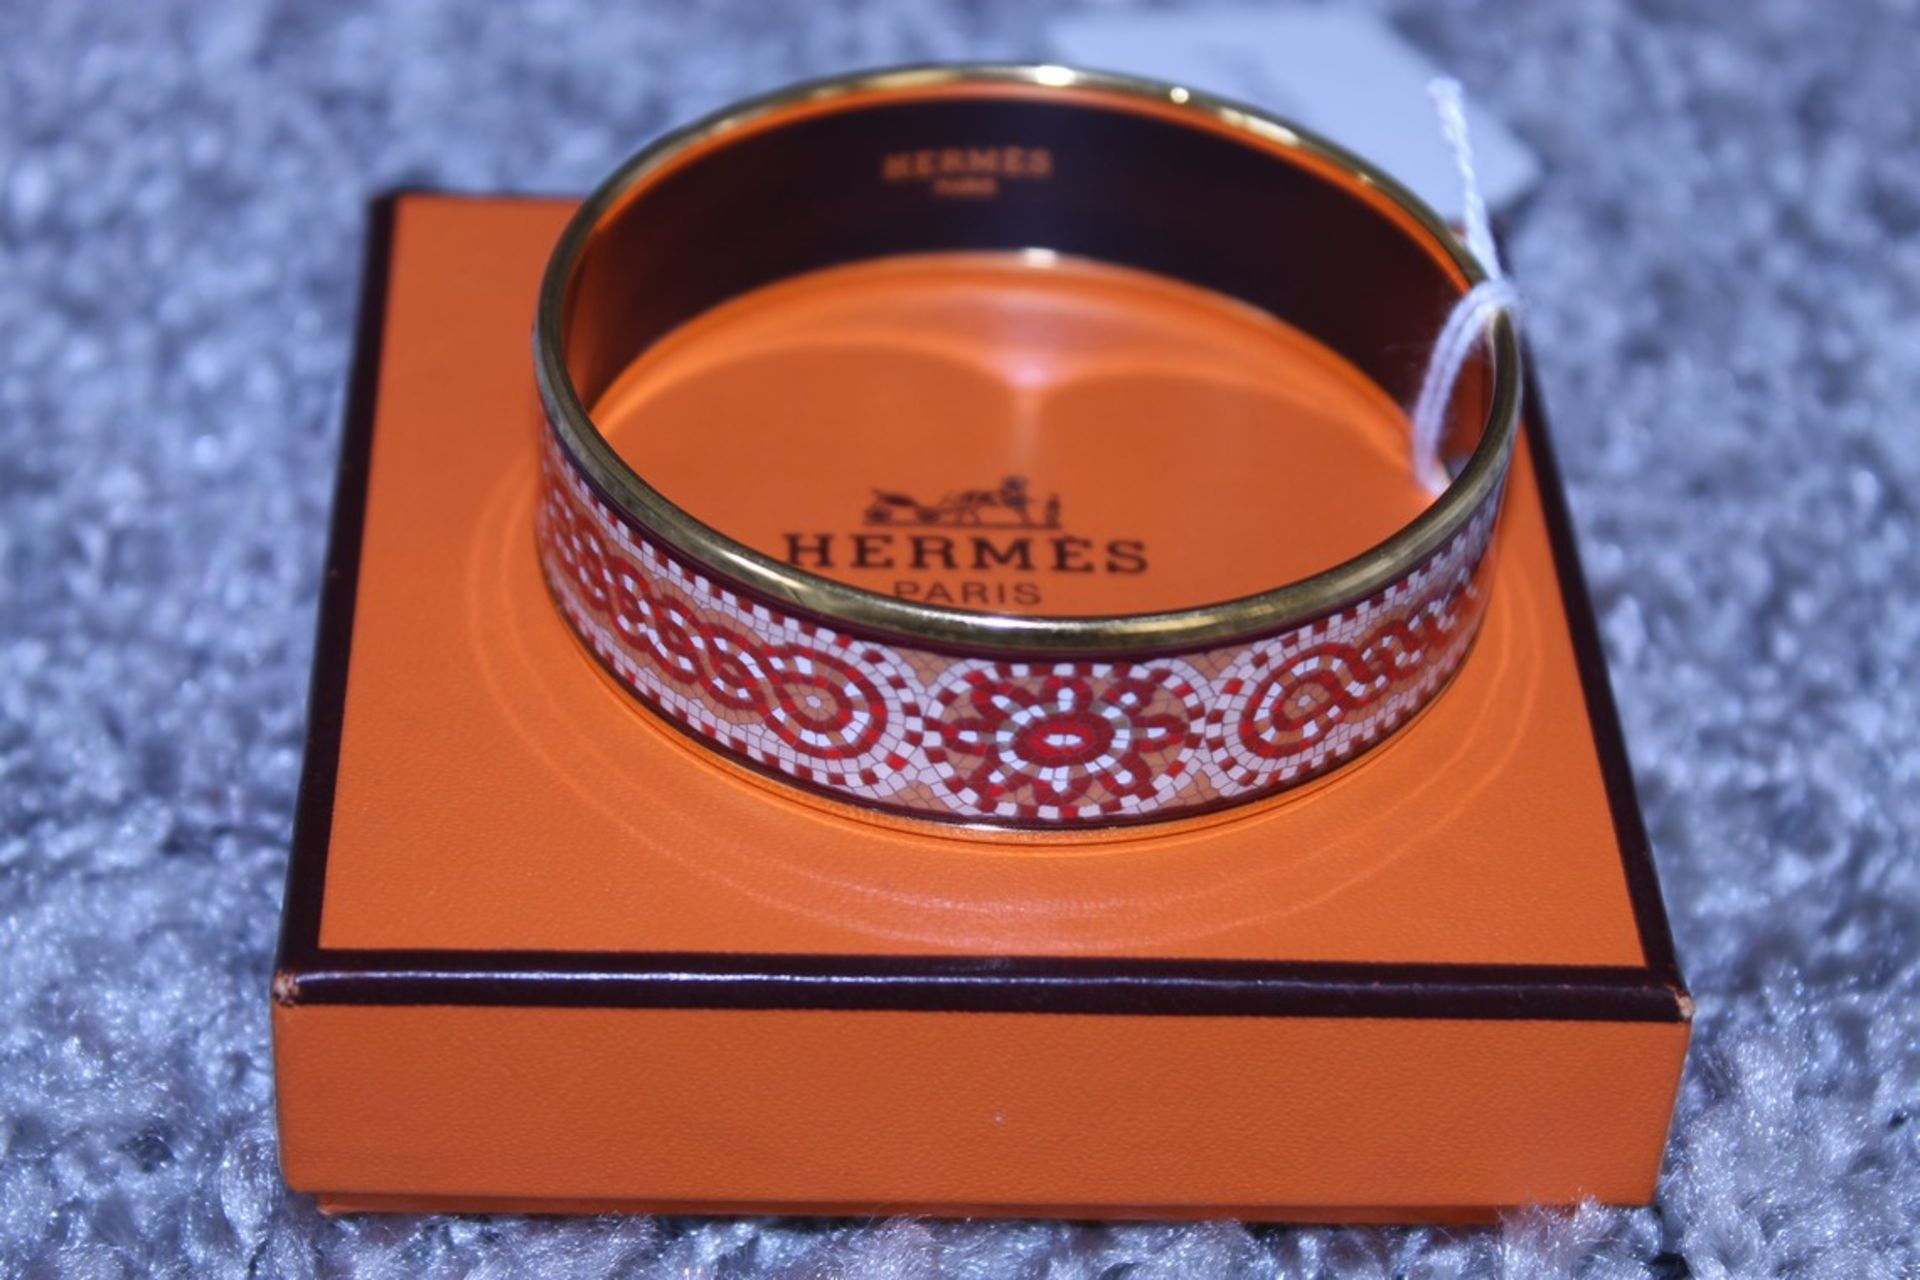 RRP £600 Hermes Enamel Bangle, Tile Art Motif, Red/Orange/Yellow, Diameter 6Cm, Condition Rating Ab, - Image 2 of 3